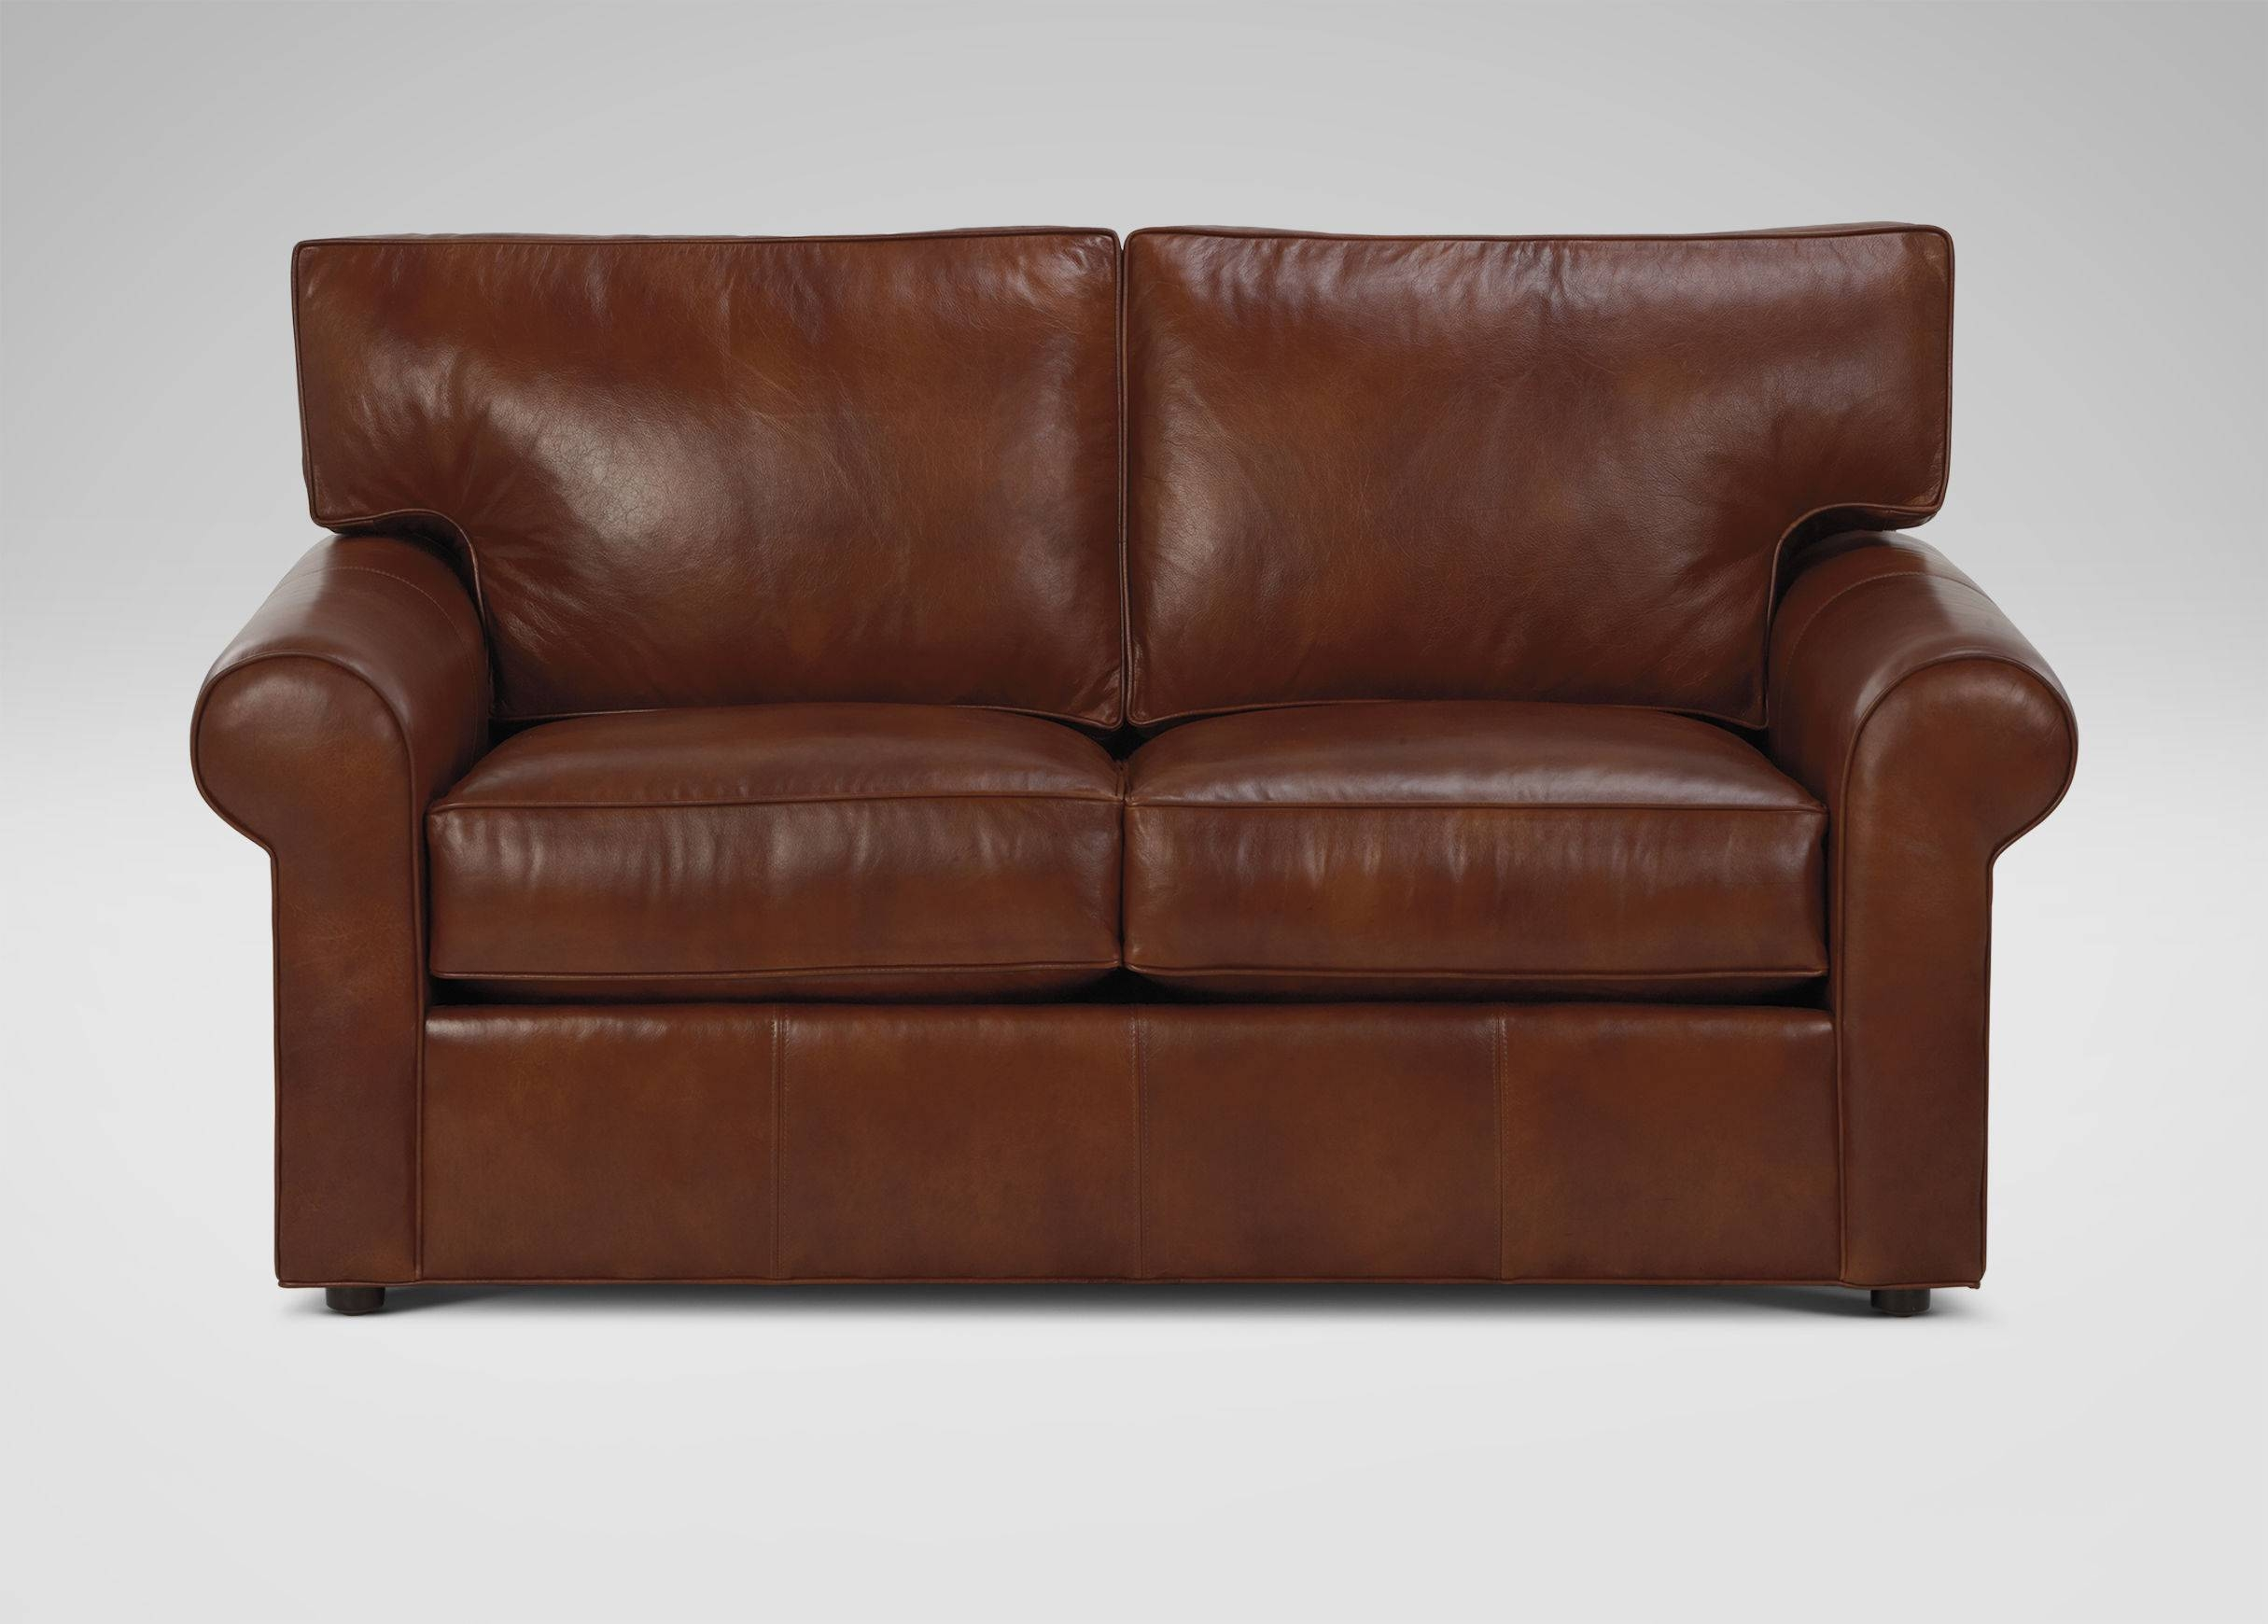 Ethan Allen Leather Sofa | Centerfieldbar within Ethan Allen Chesterfield Sofas (Image 4 of 15)